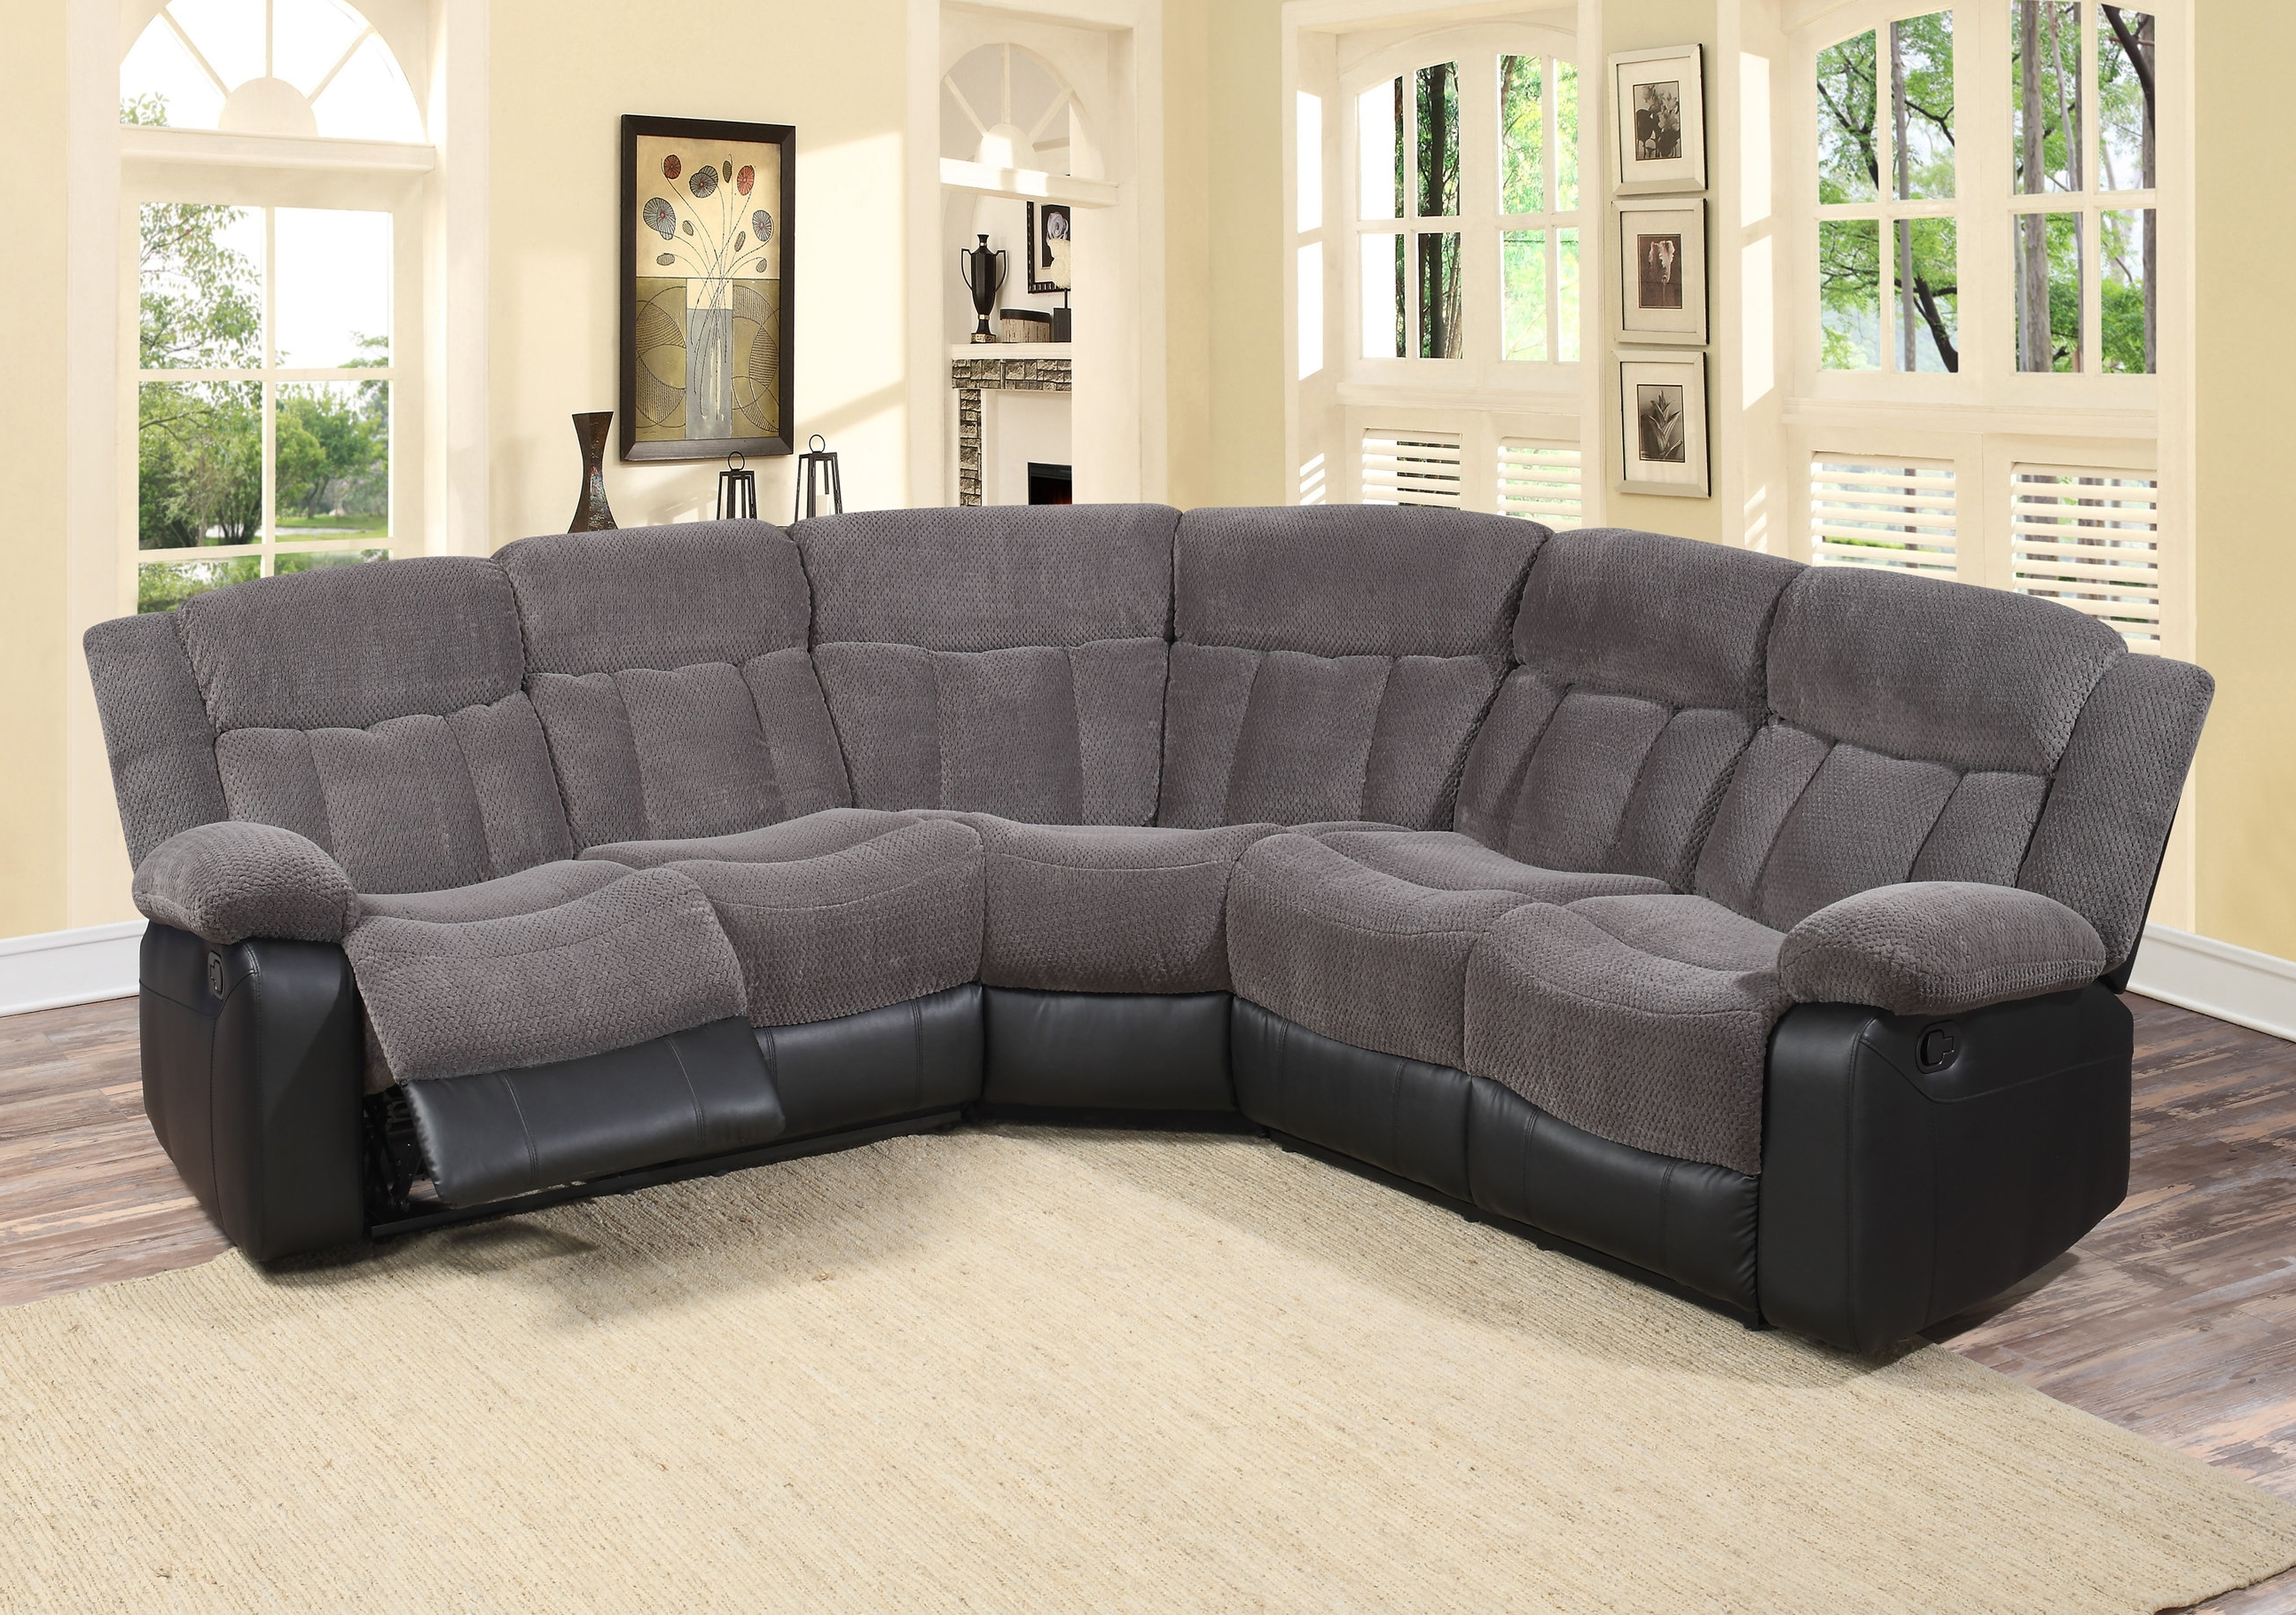 Most Popular Reclining Sectionals You'll Love